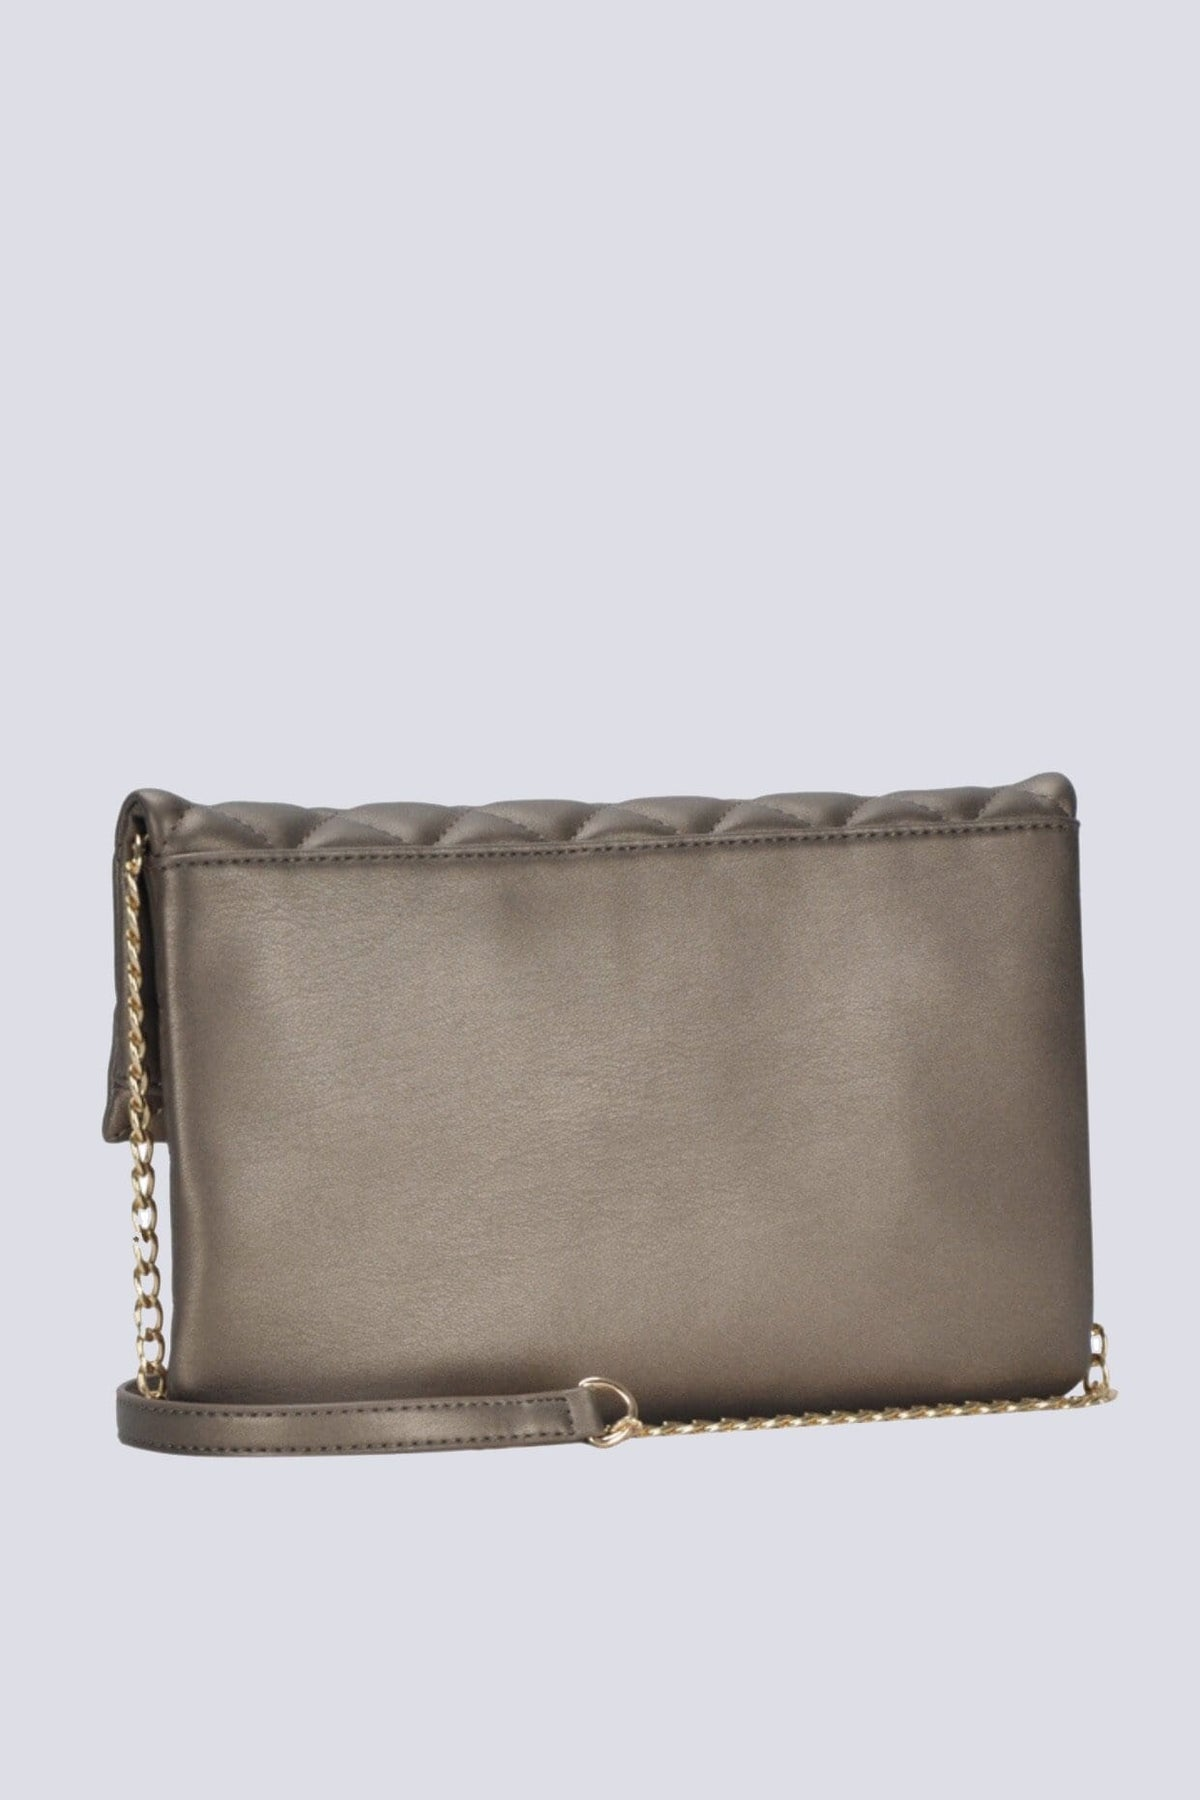 CLUTCH Quilted Studded Clutch in Pewter - Chloe Dao